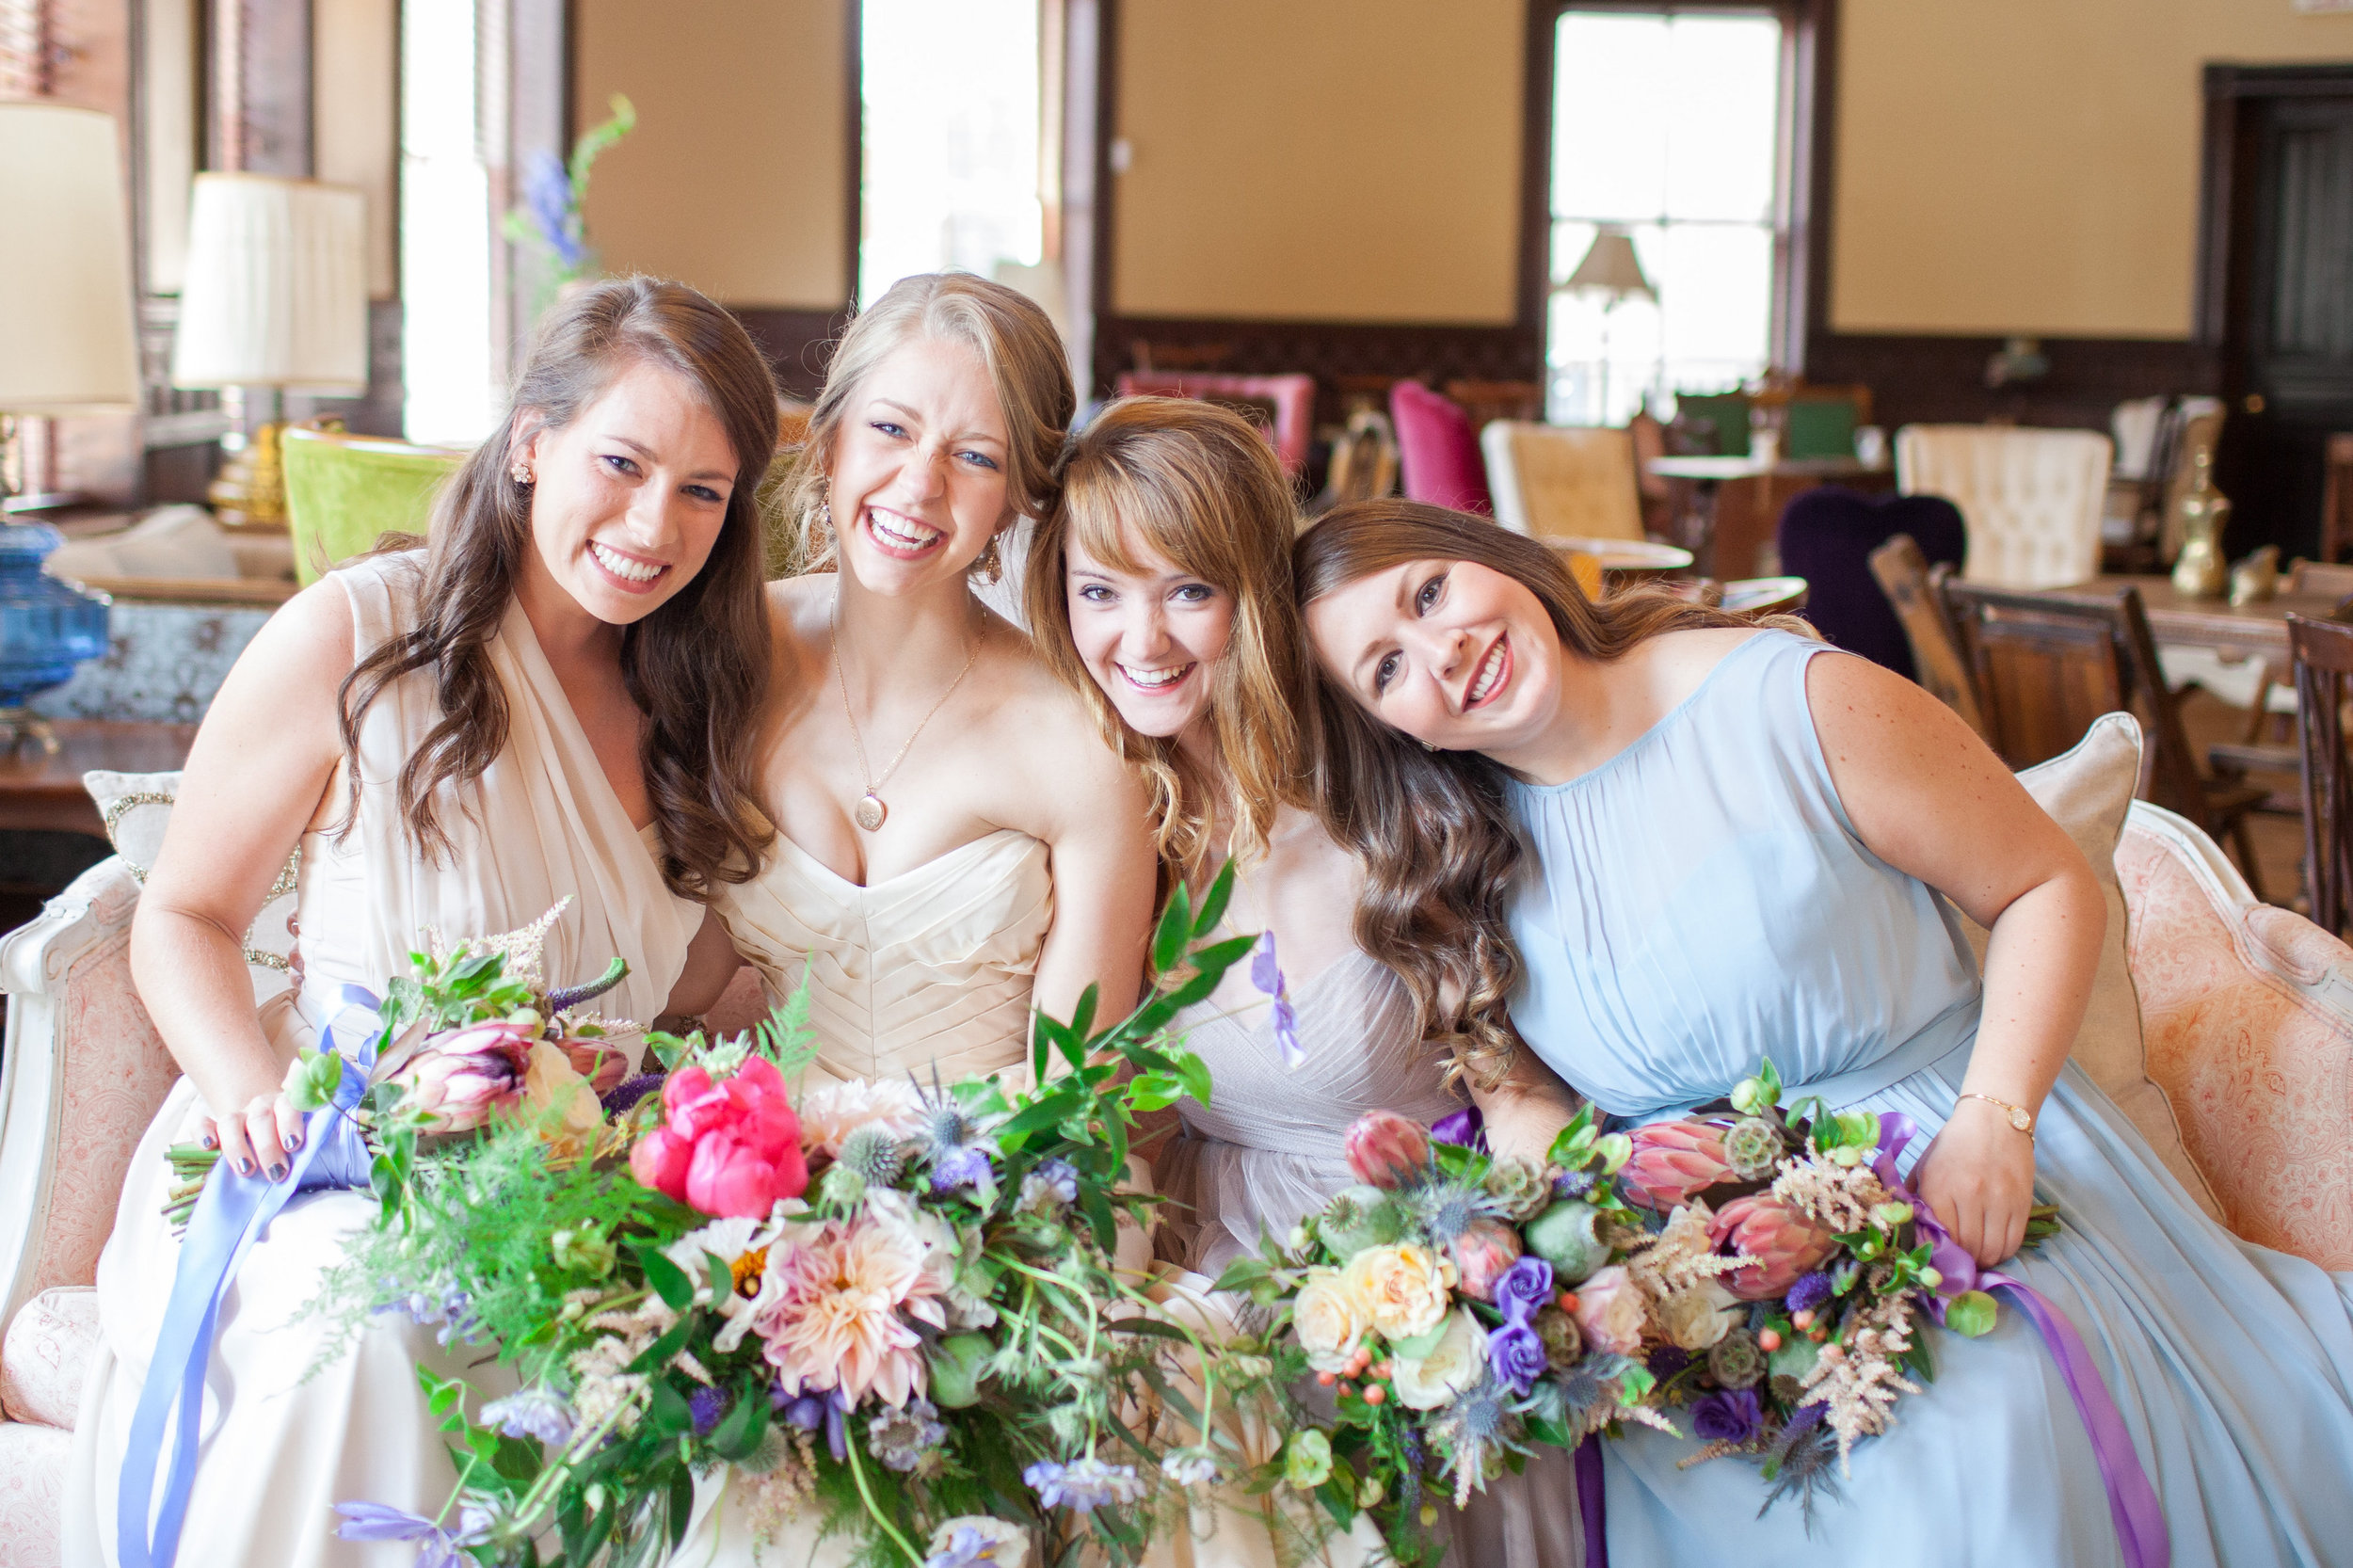 Mix and match bridesmaid dresses with vintage inspired florals. Georgia wedding.